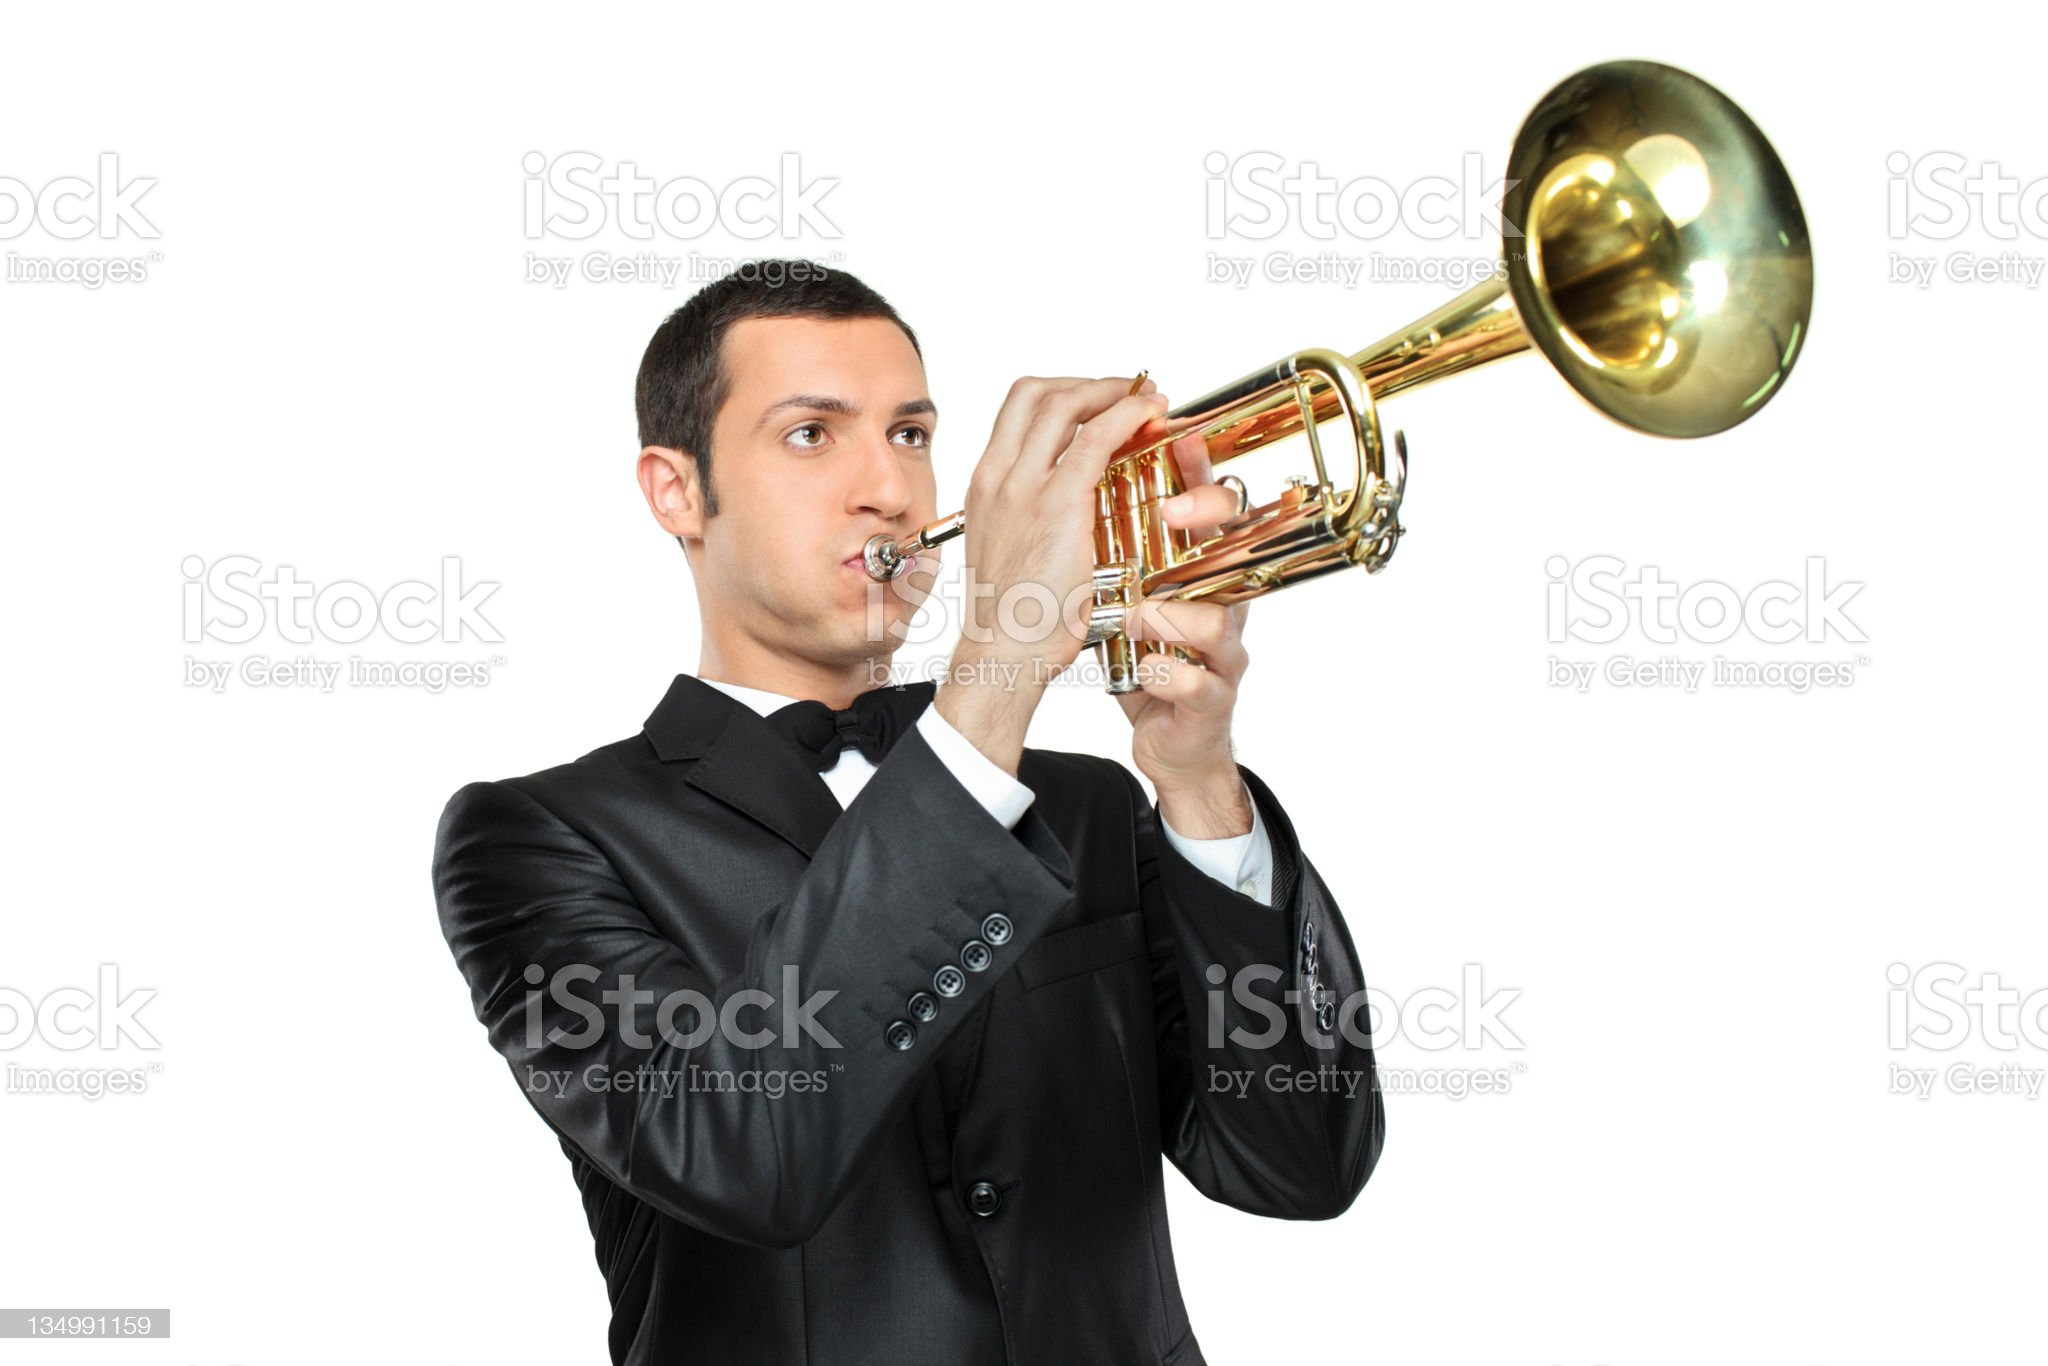 Young man in suit playing a trumpet royalty-free stock photo